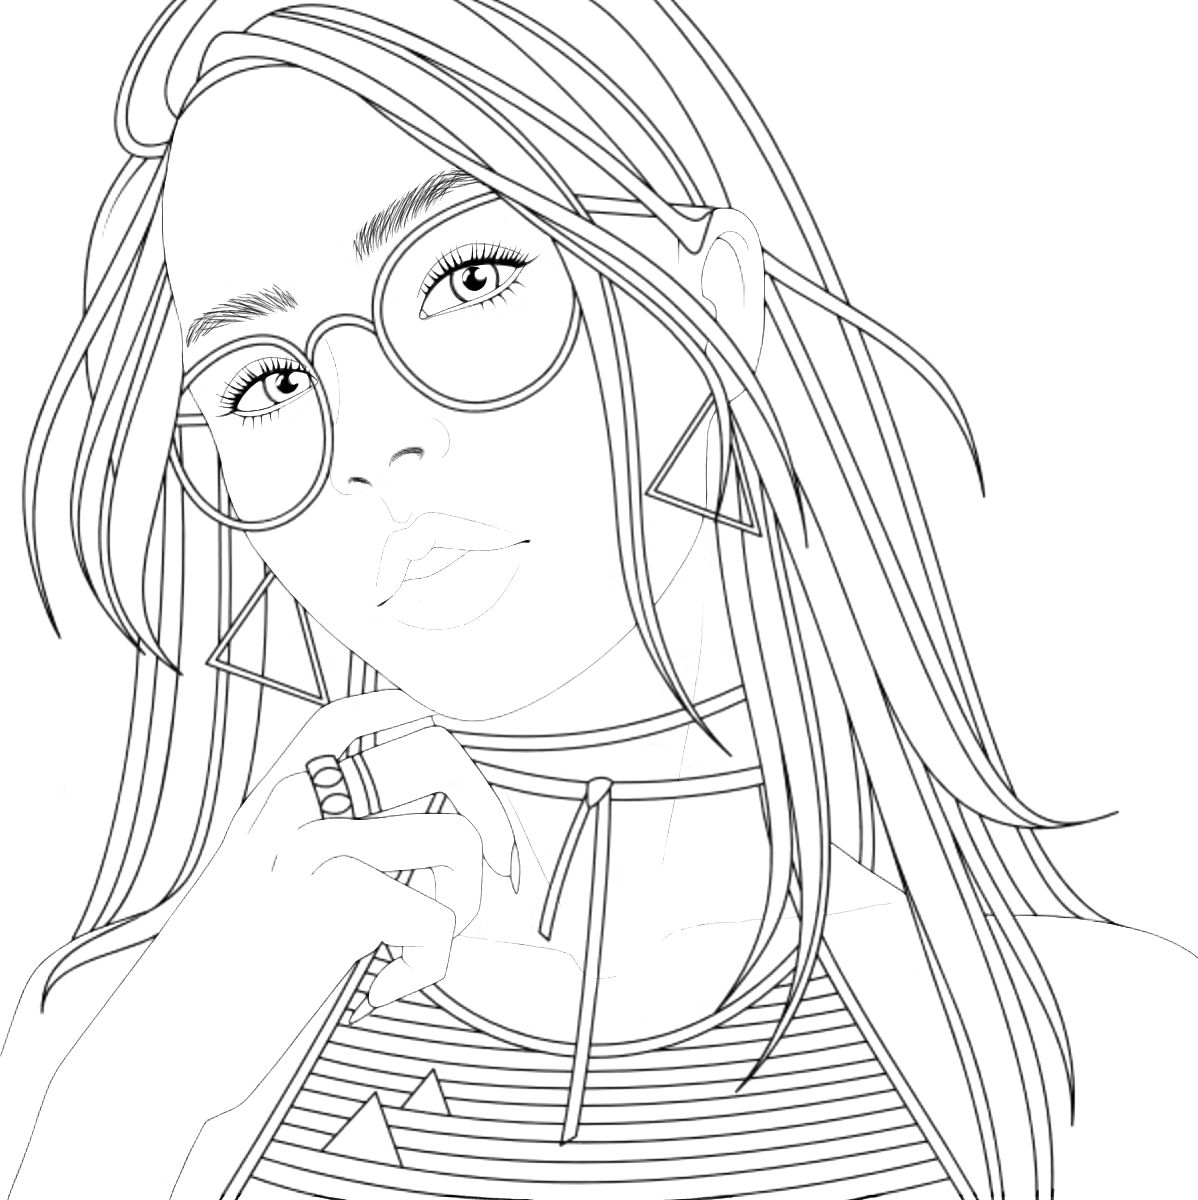 people coloring people coloring pages image by melissa edge morgan on coloring people